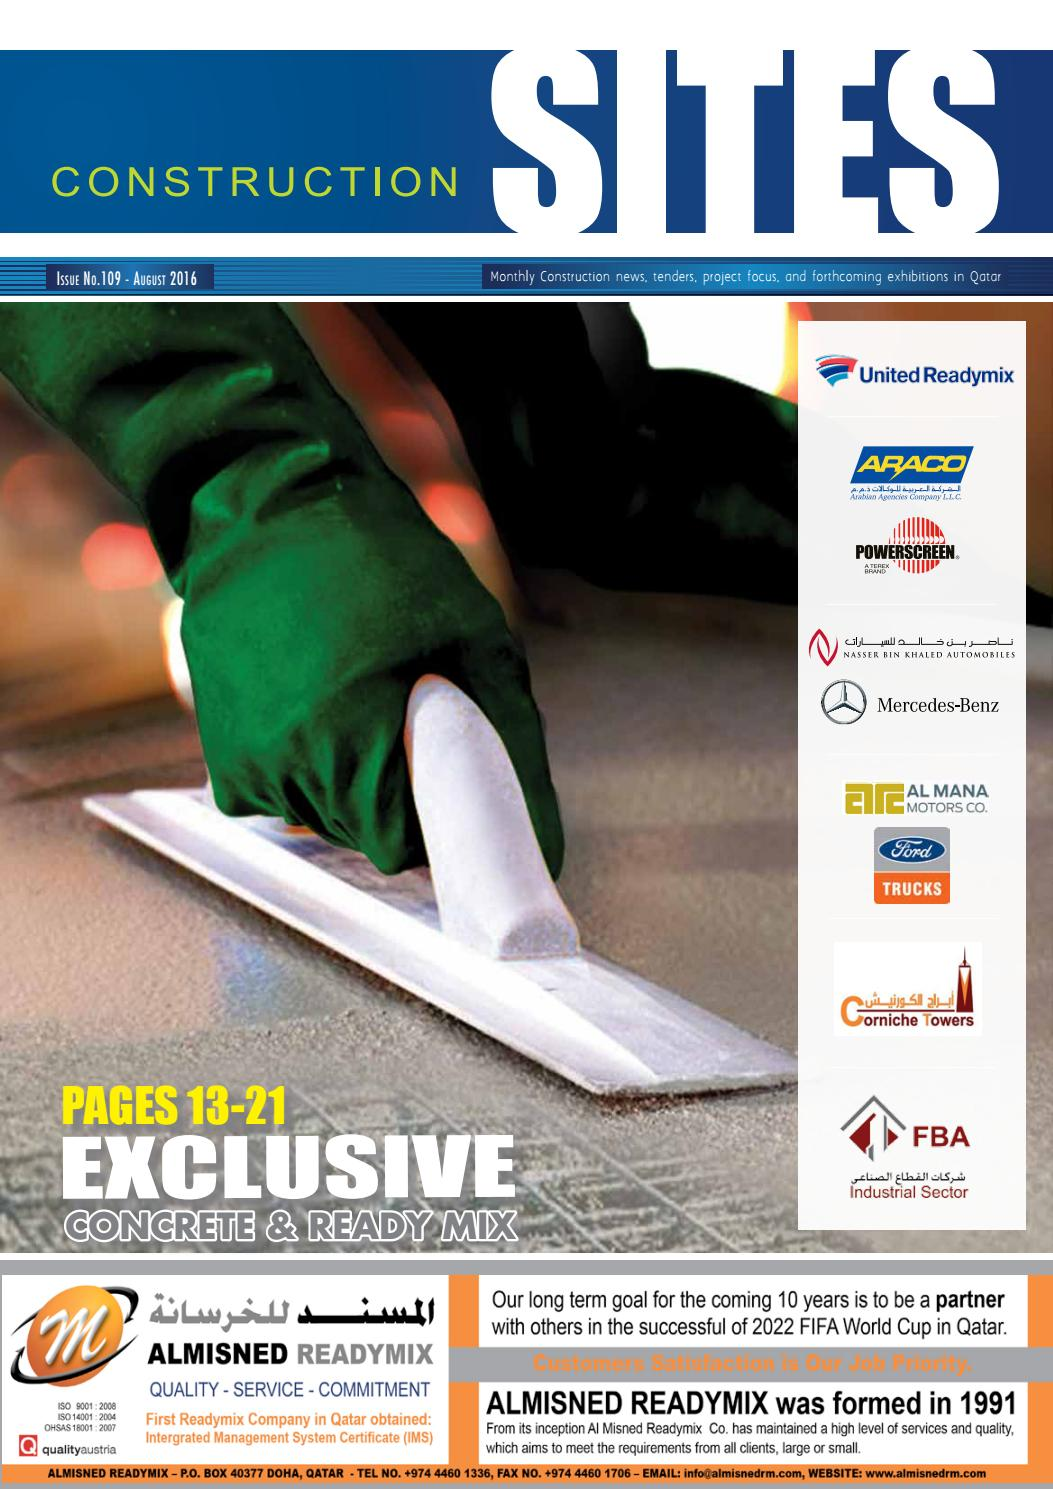 Construction Sites | August Issue no  109 by Qatar